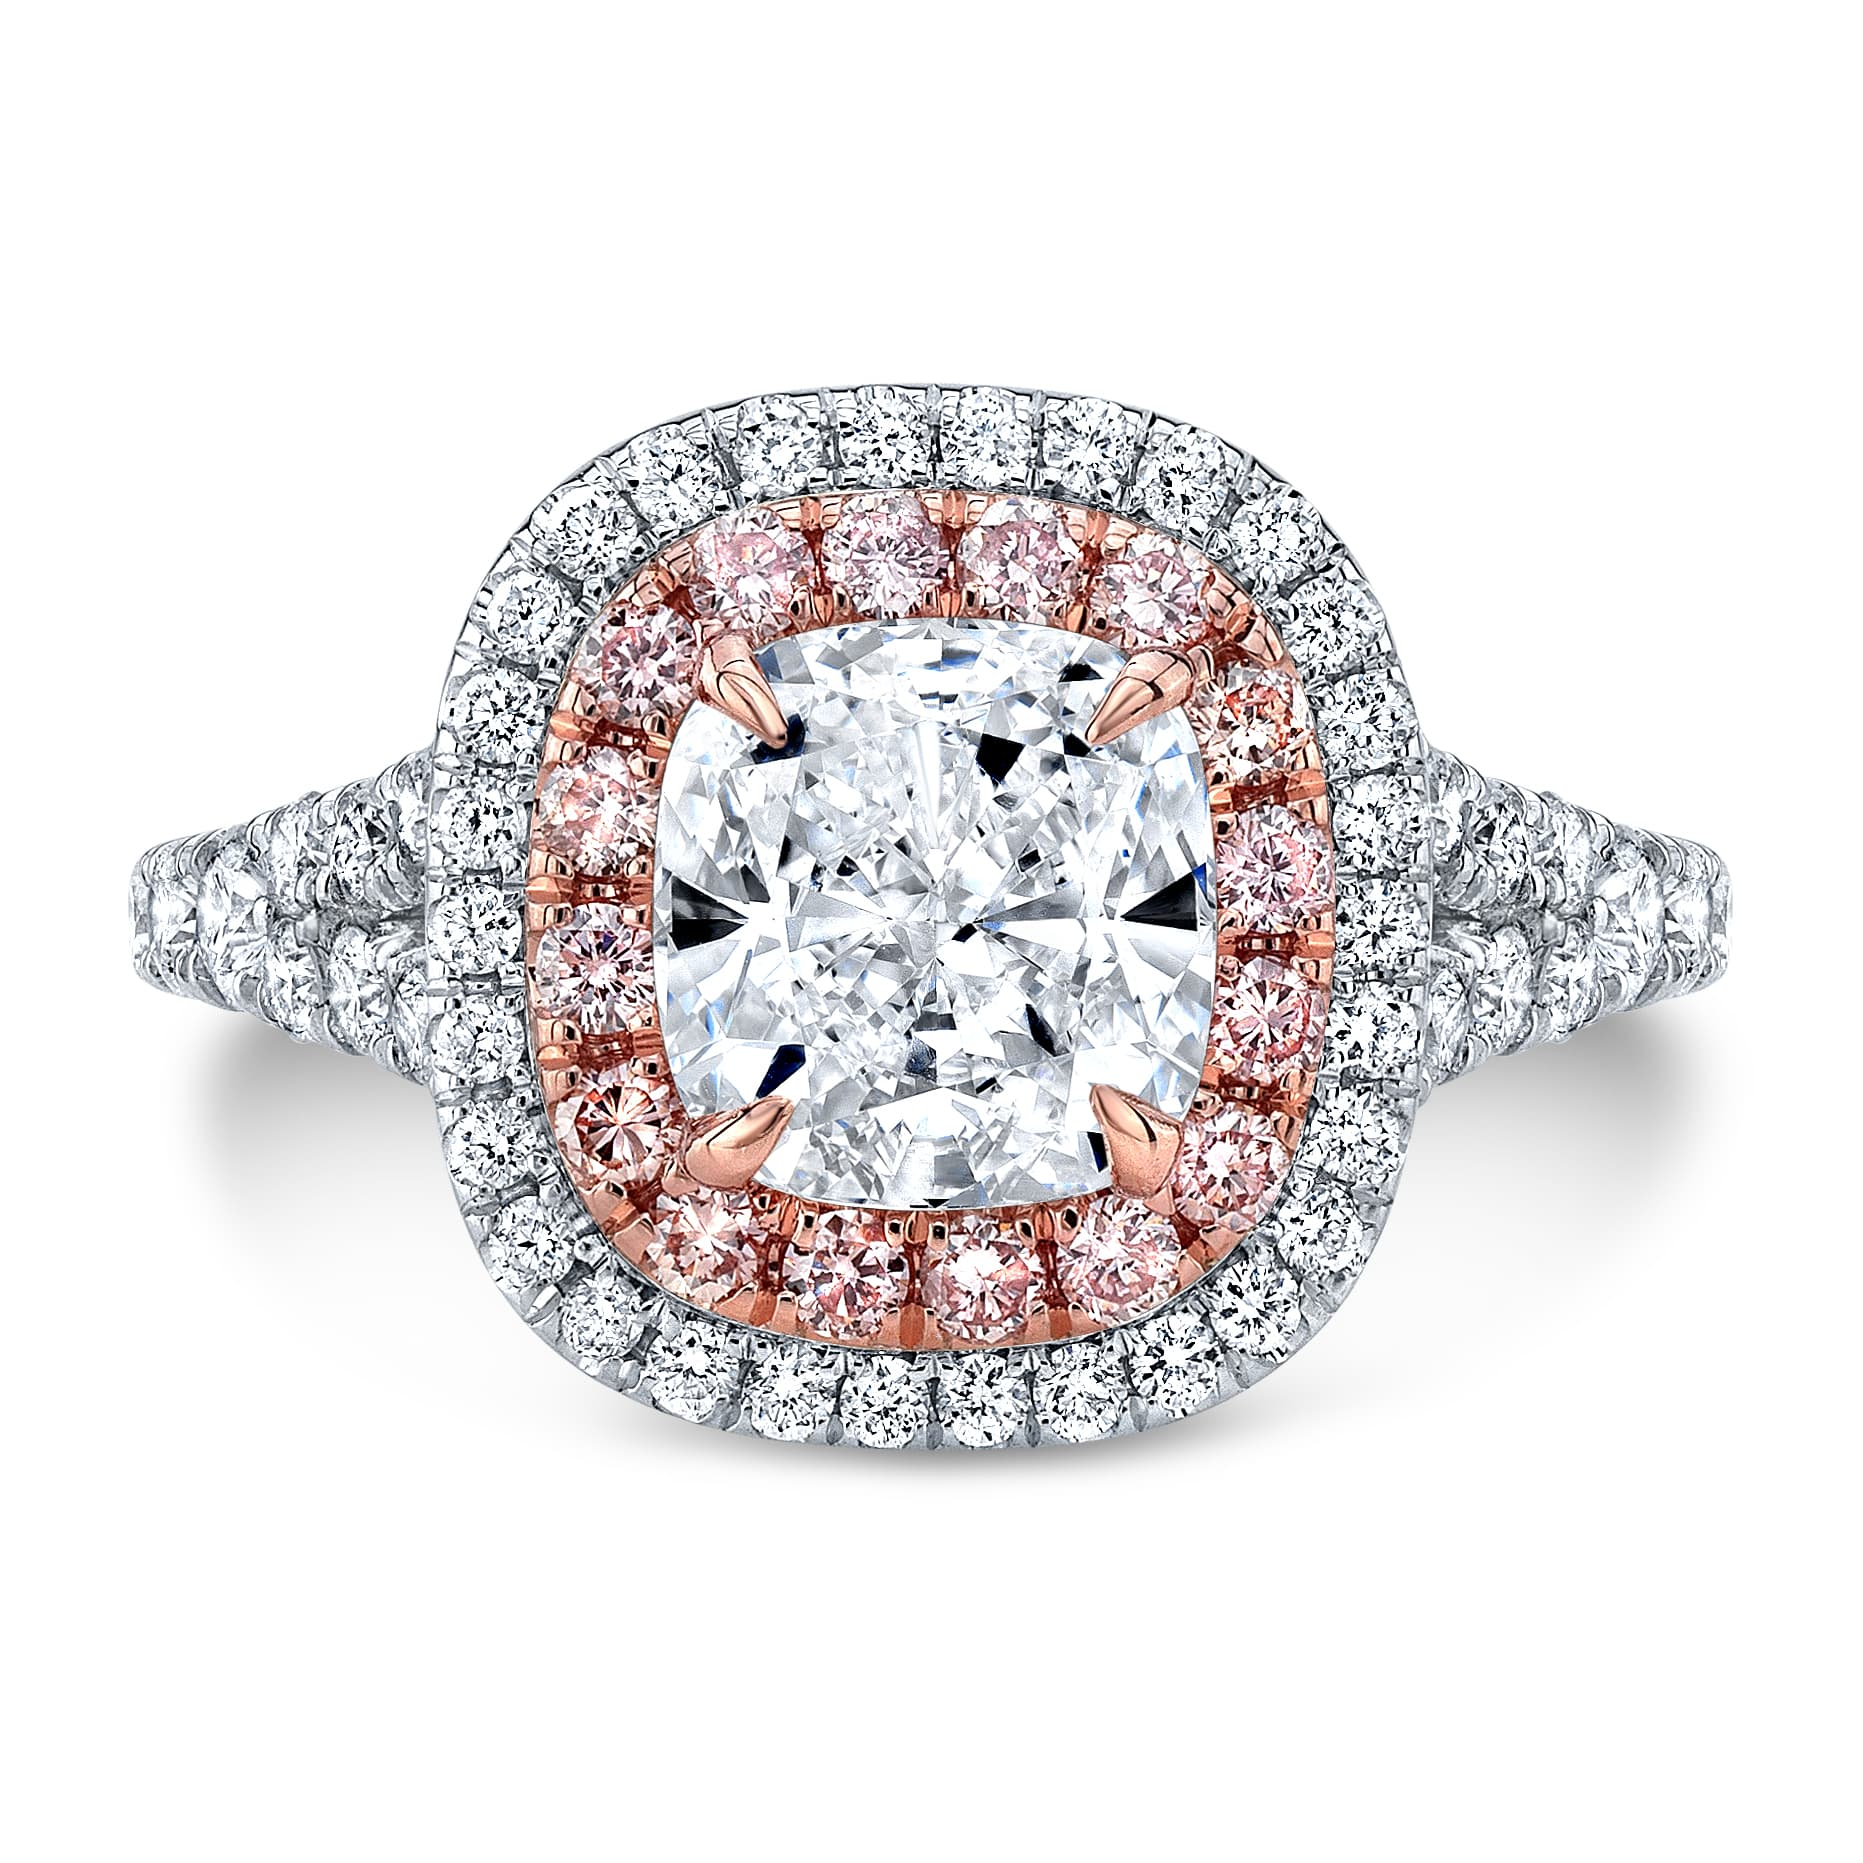 Double Halo Pave Split Shank with Natural Fancy Intense Pink Diamonds Engagement Ring